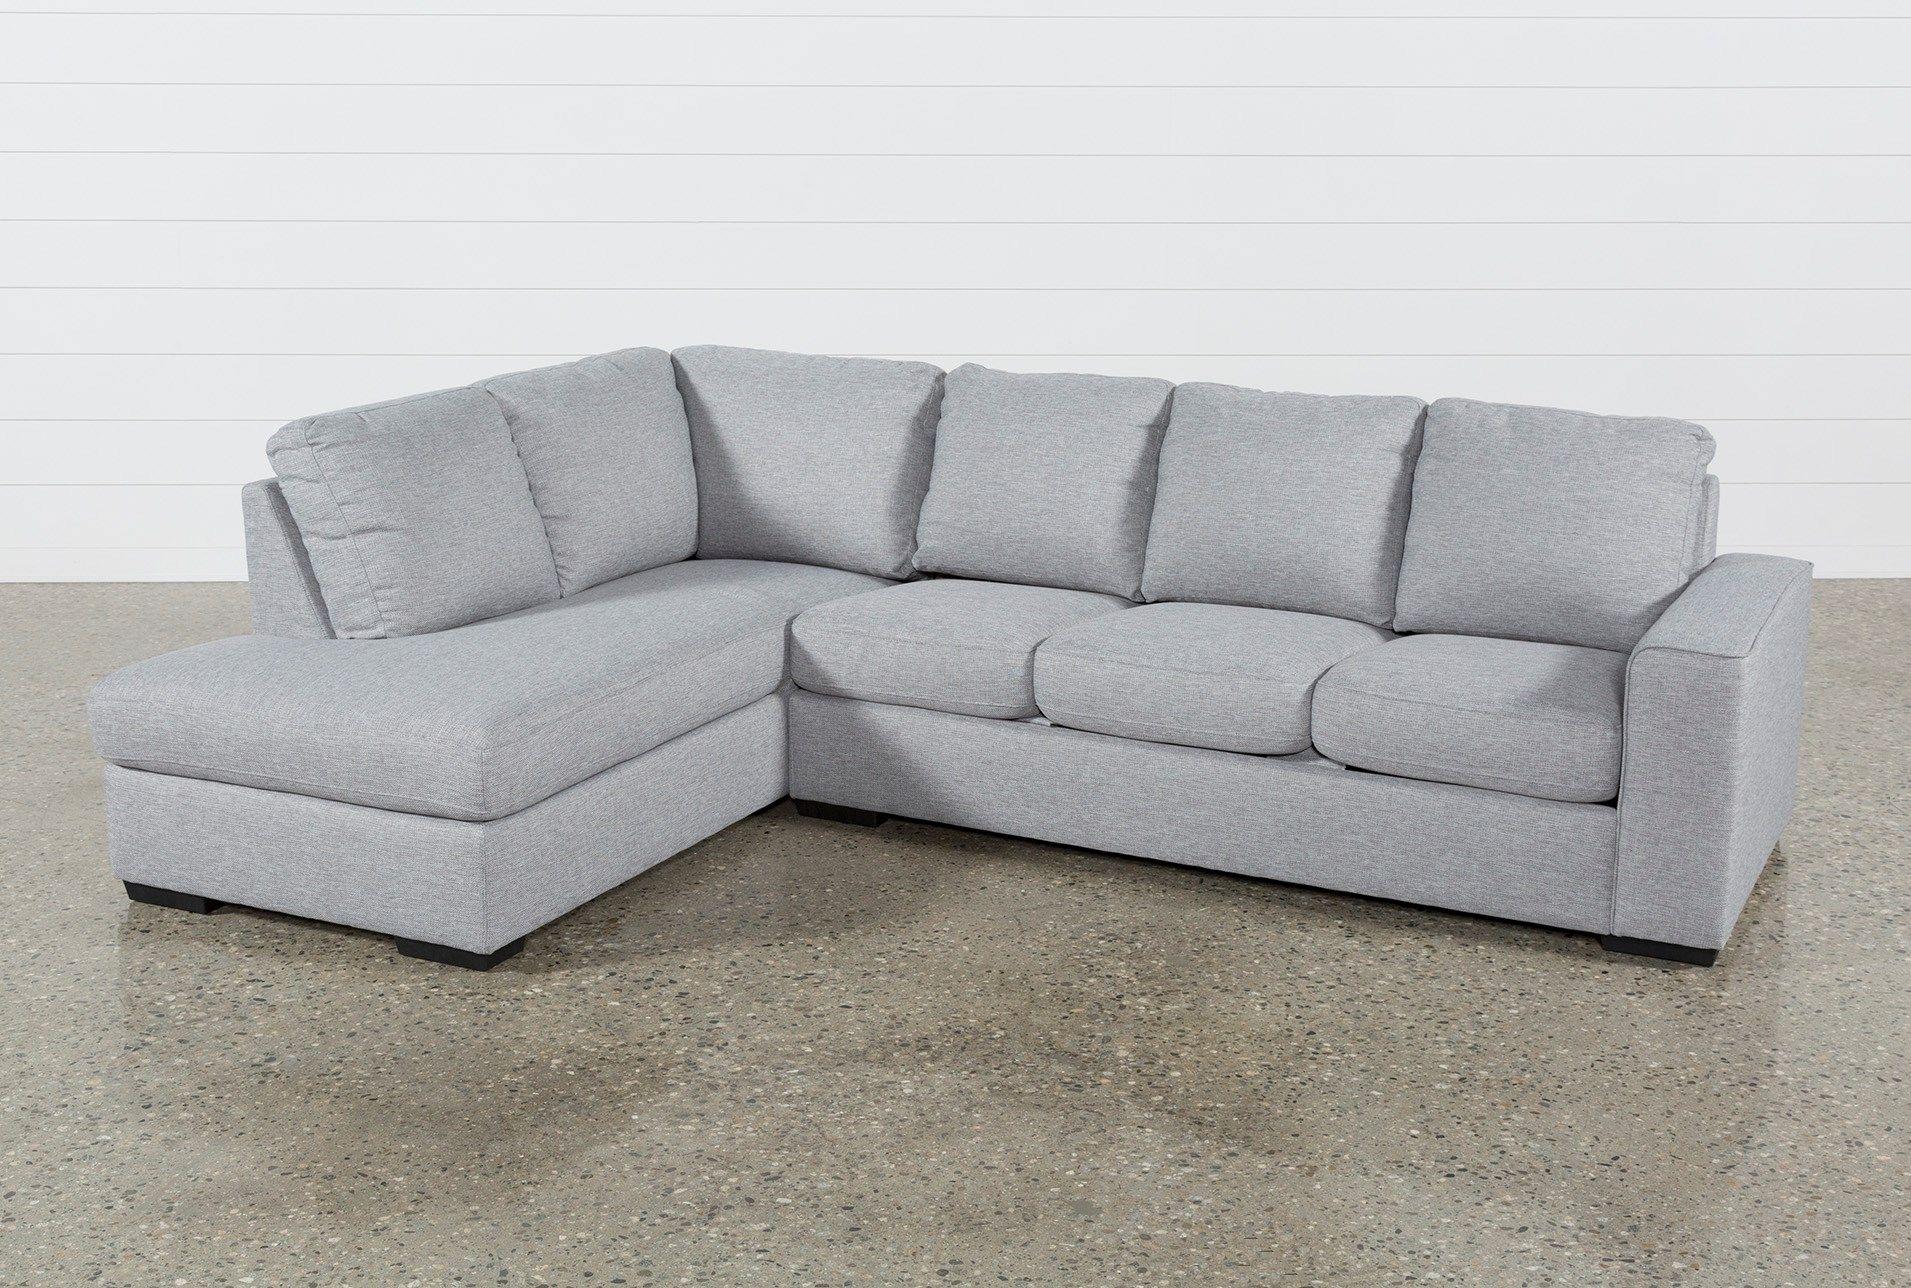 Lucy Grey 2 Piece Sectional W/laf Chaise | Tx House | Pinterest Regarding Aquarius Dark Grey 2 Piece Sectionals With Raf Chaise (View 6 of 25)